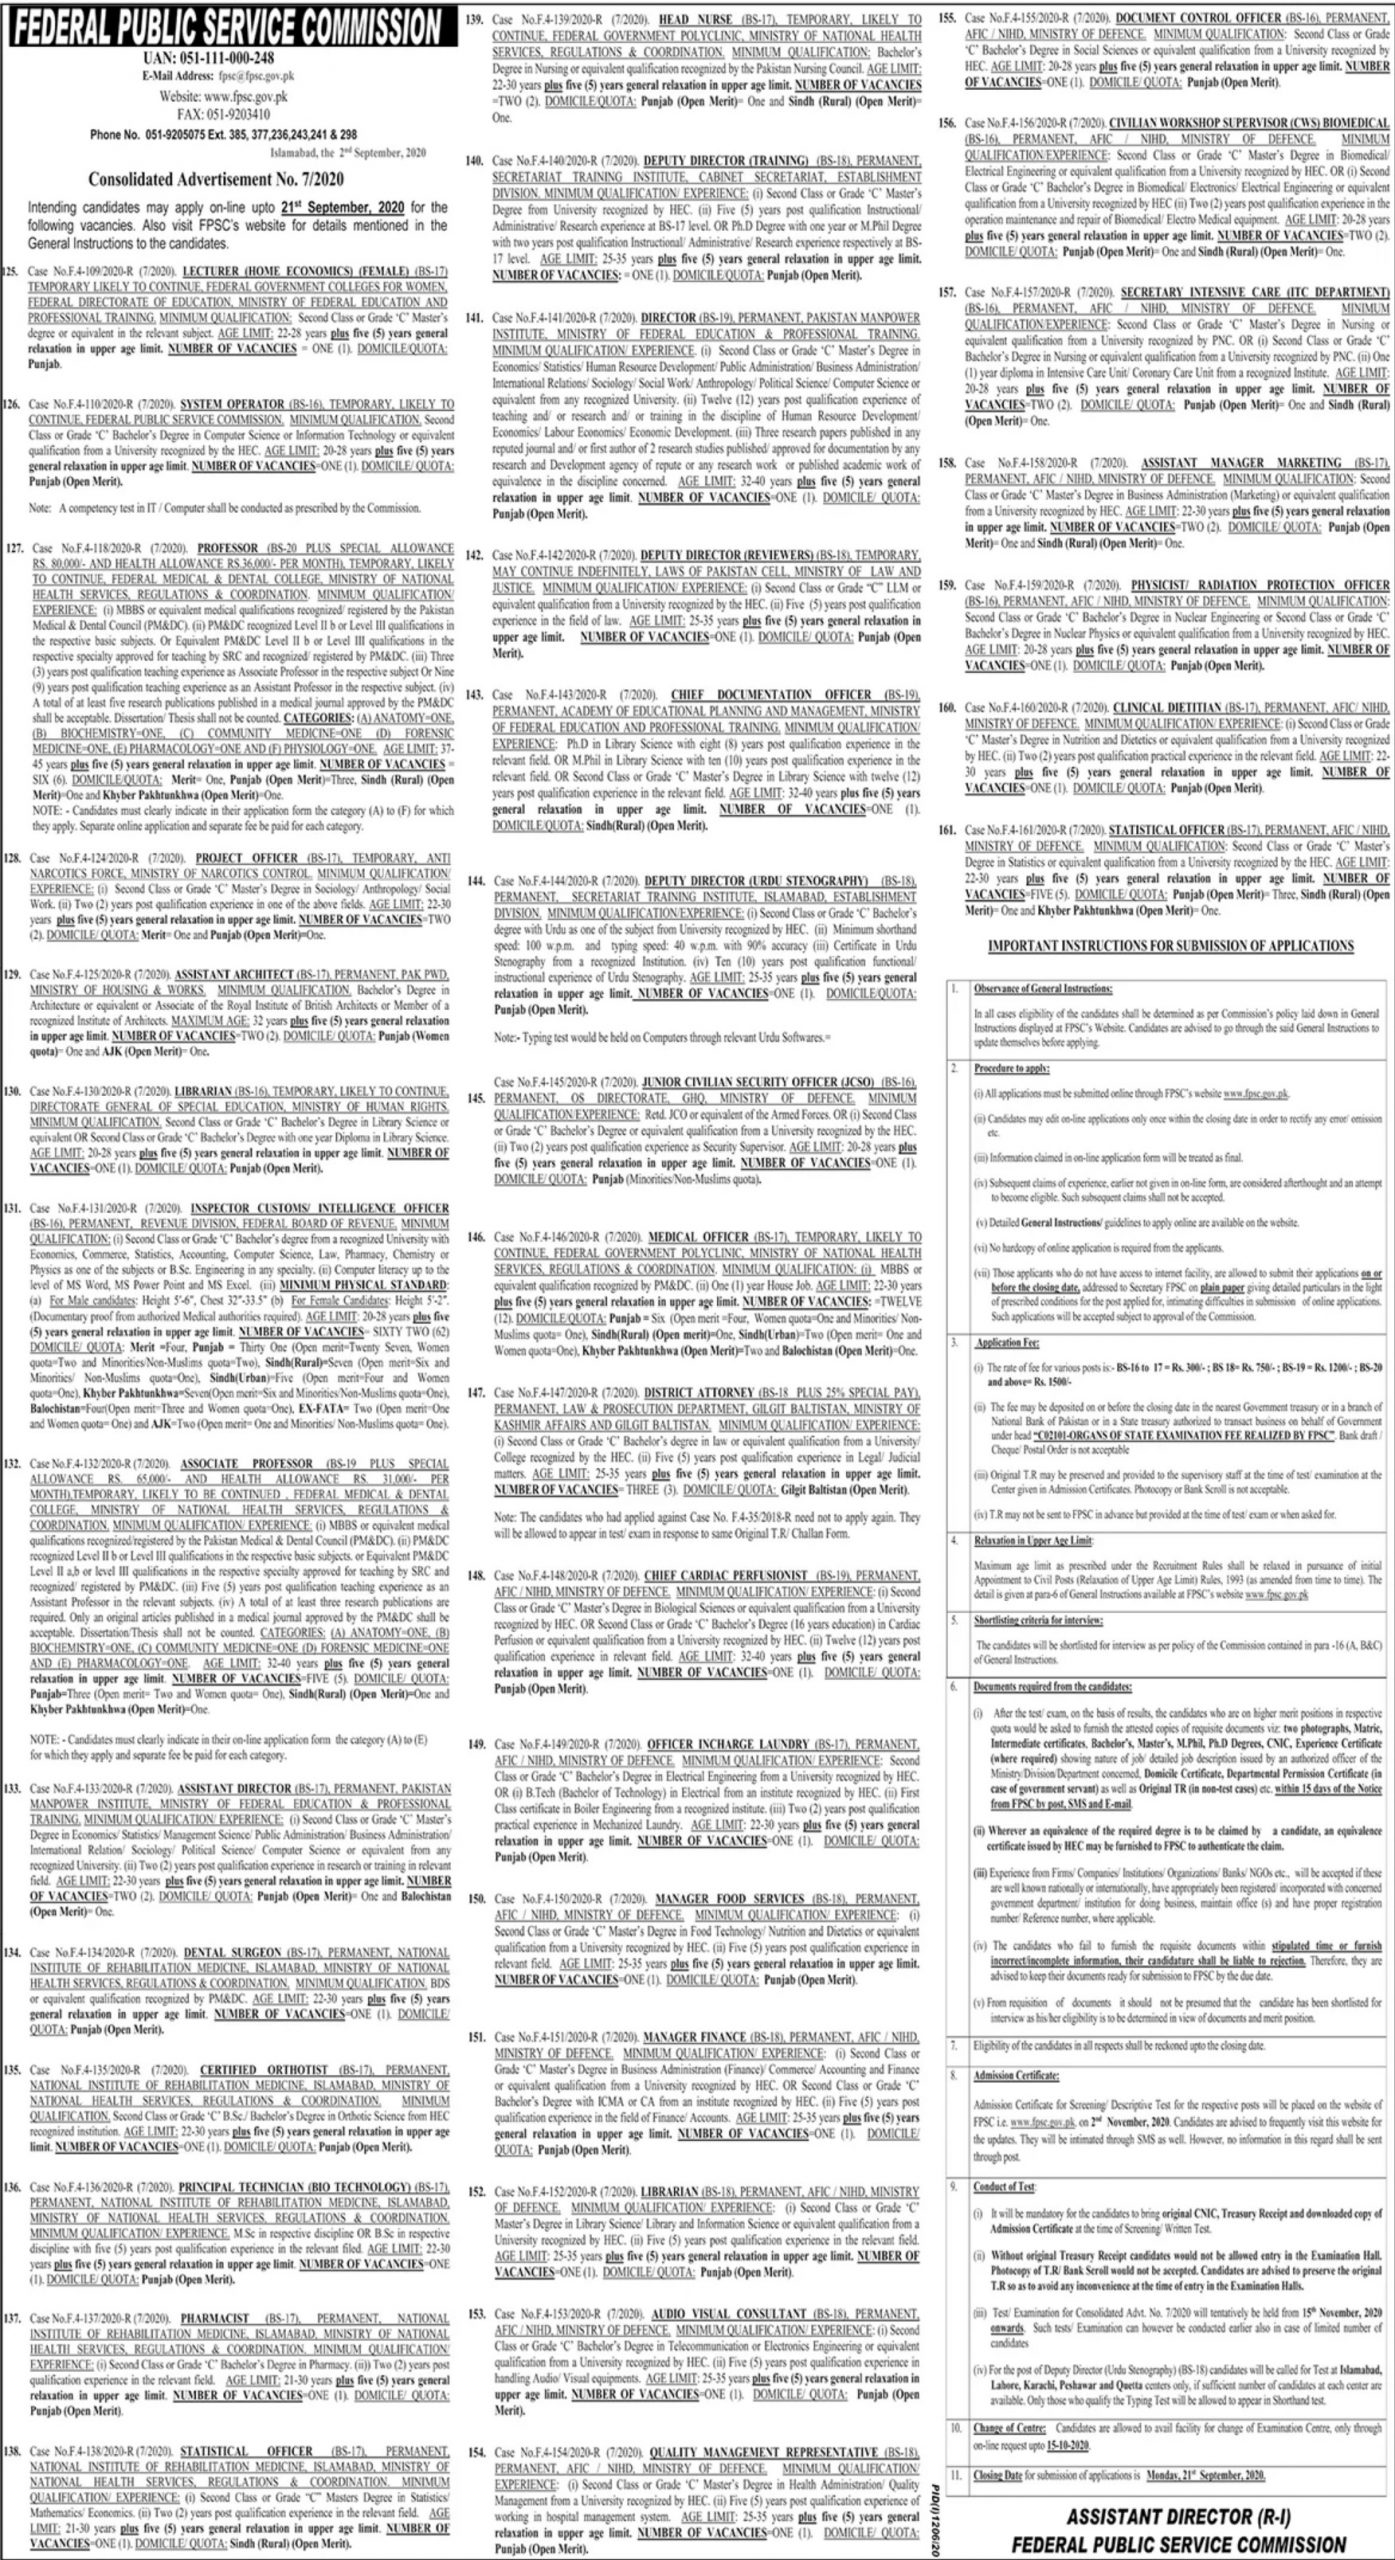 FPSC Jobs September 2020 Federal Public Service Commission